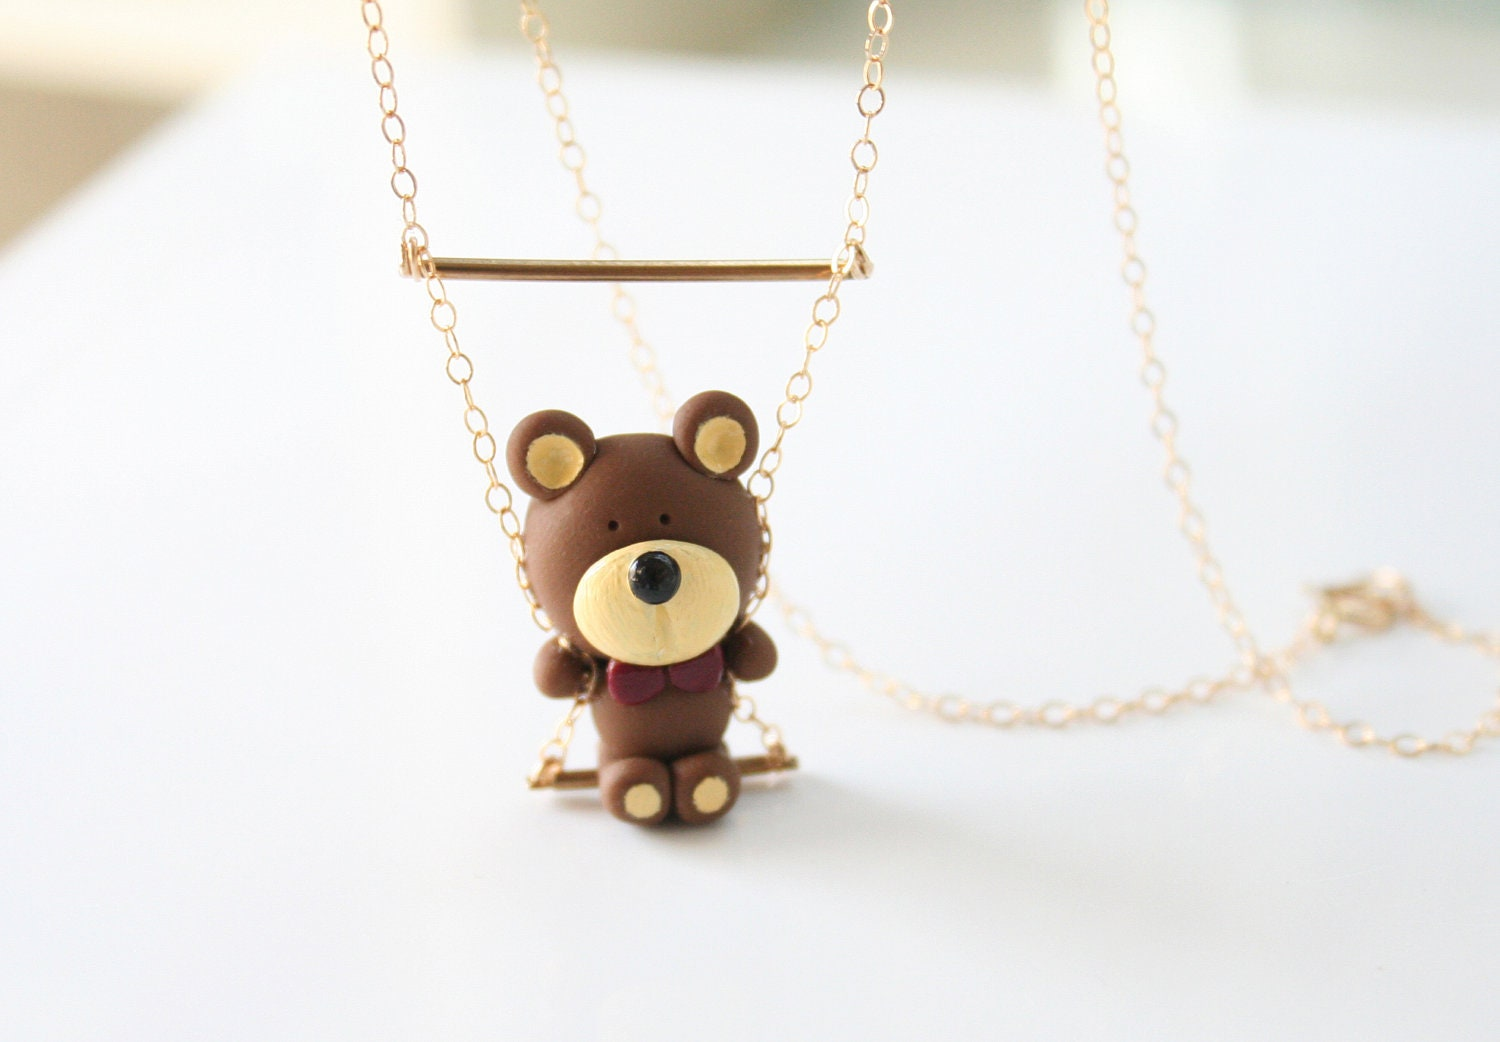 Bear swinging on gold chain necklace